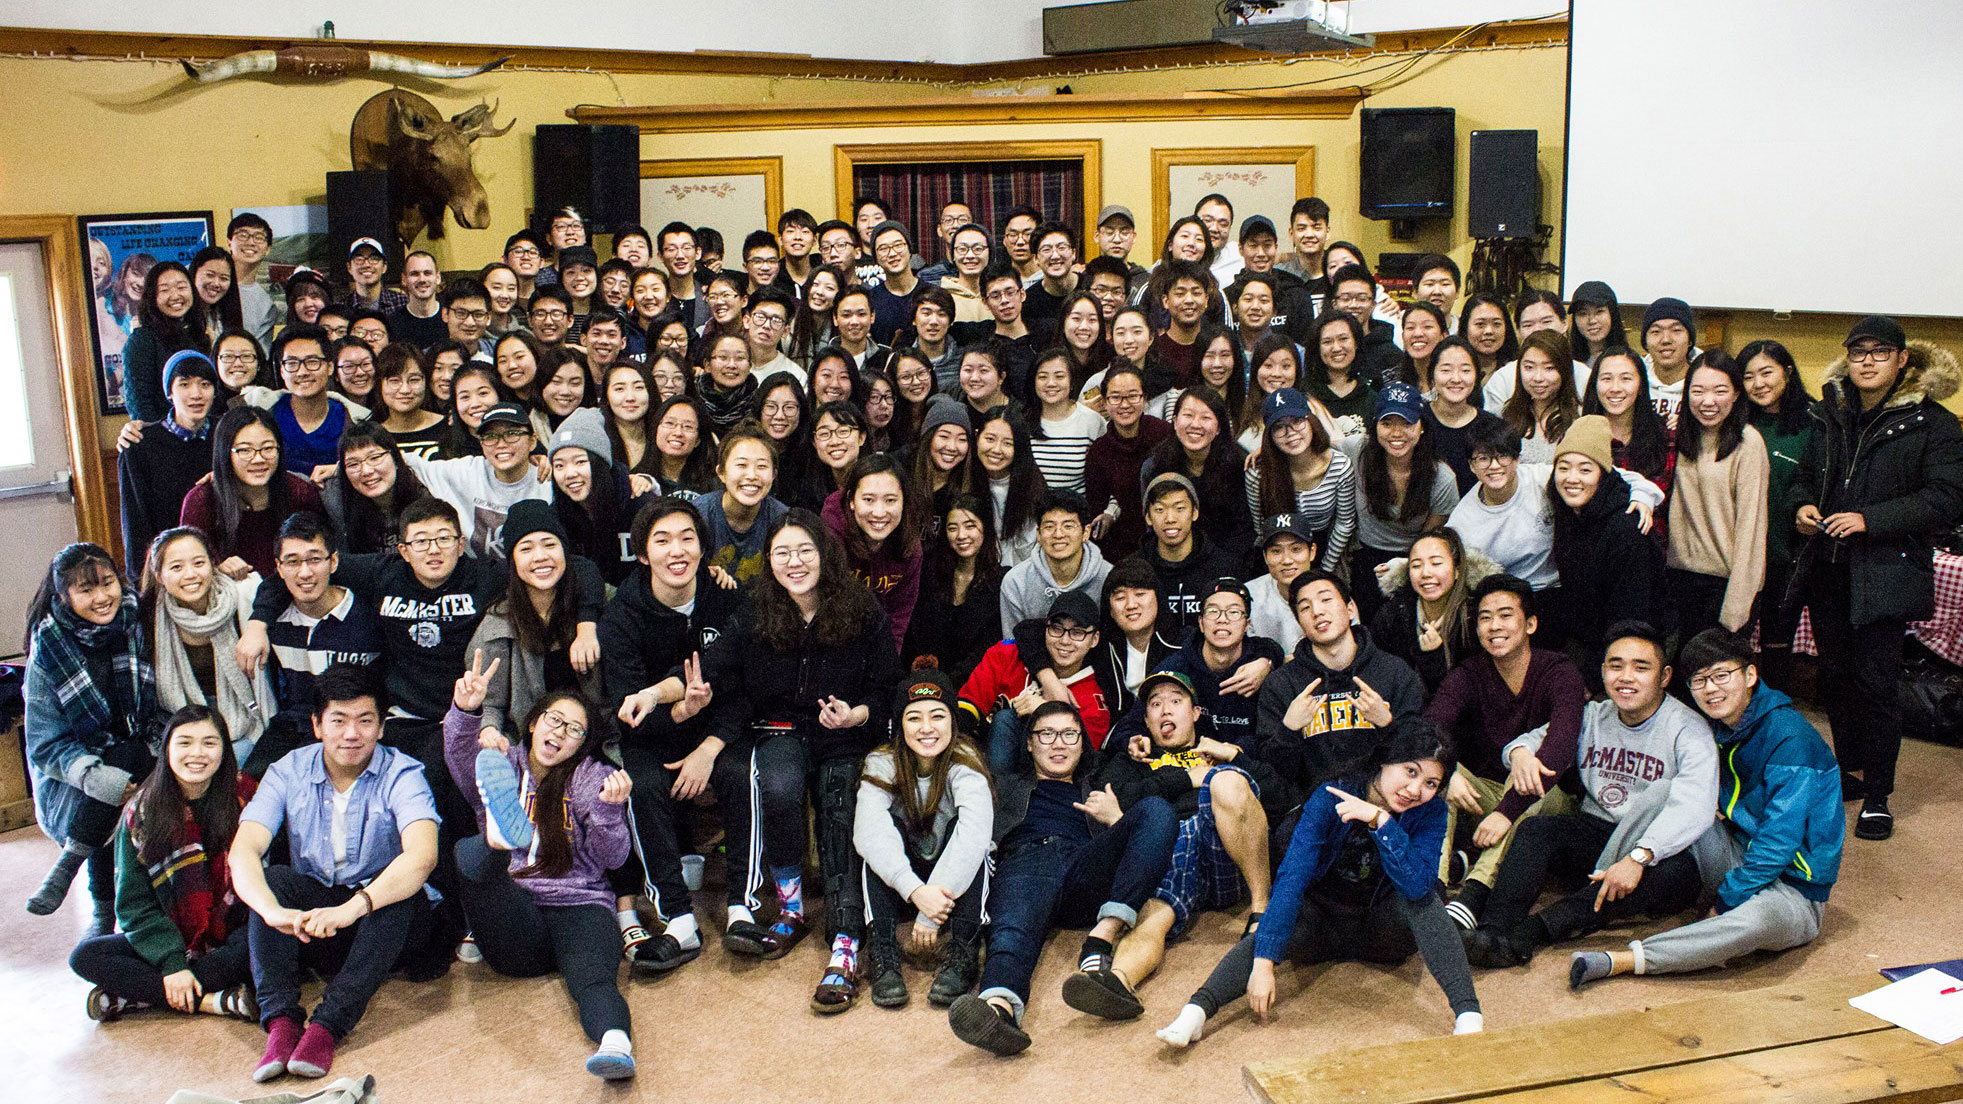 University of Toronto students posing for a group photo